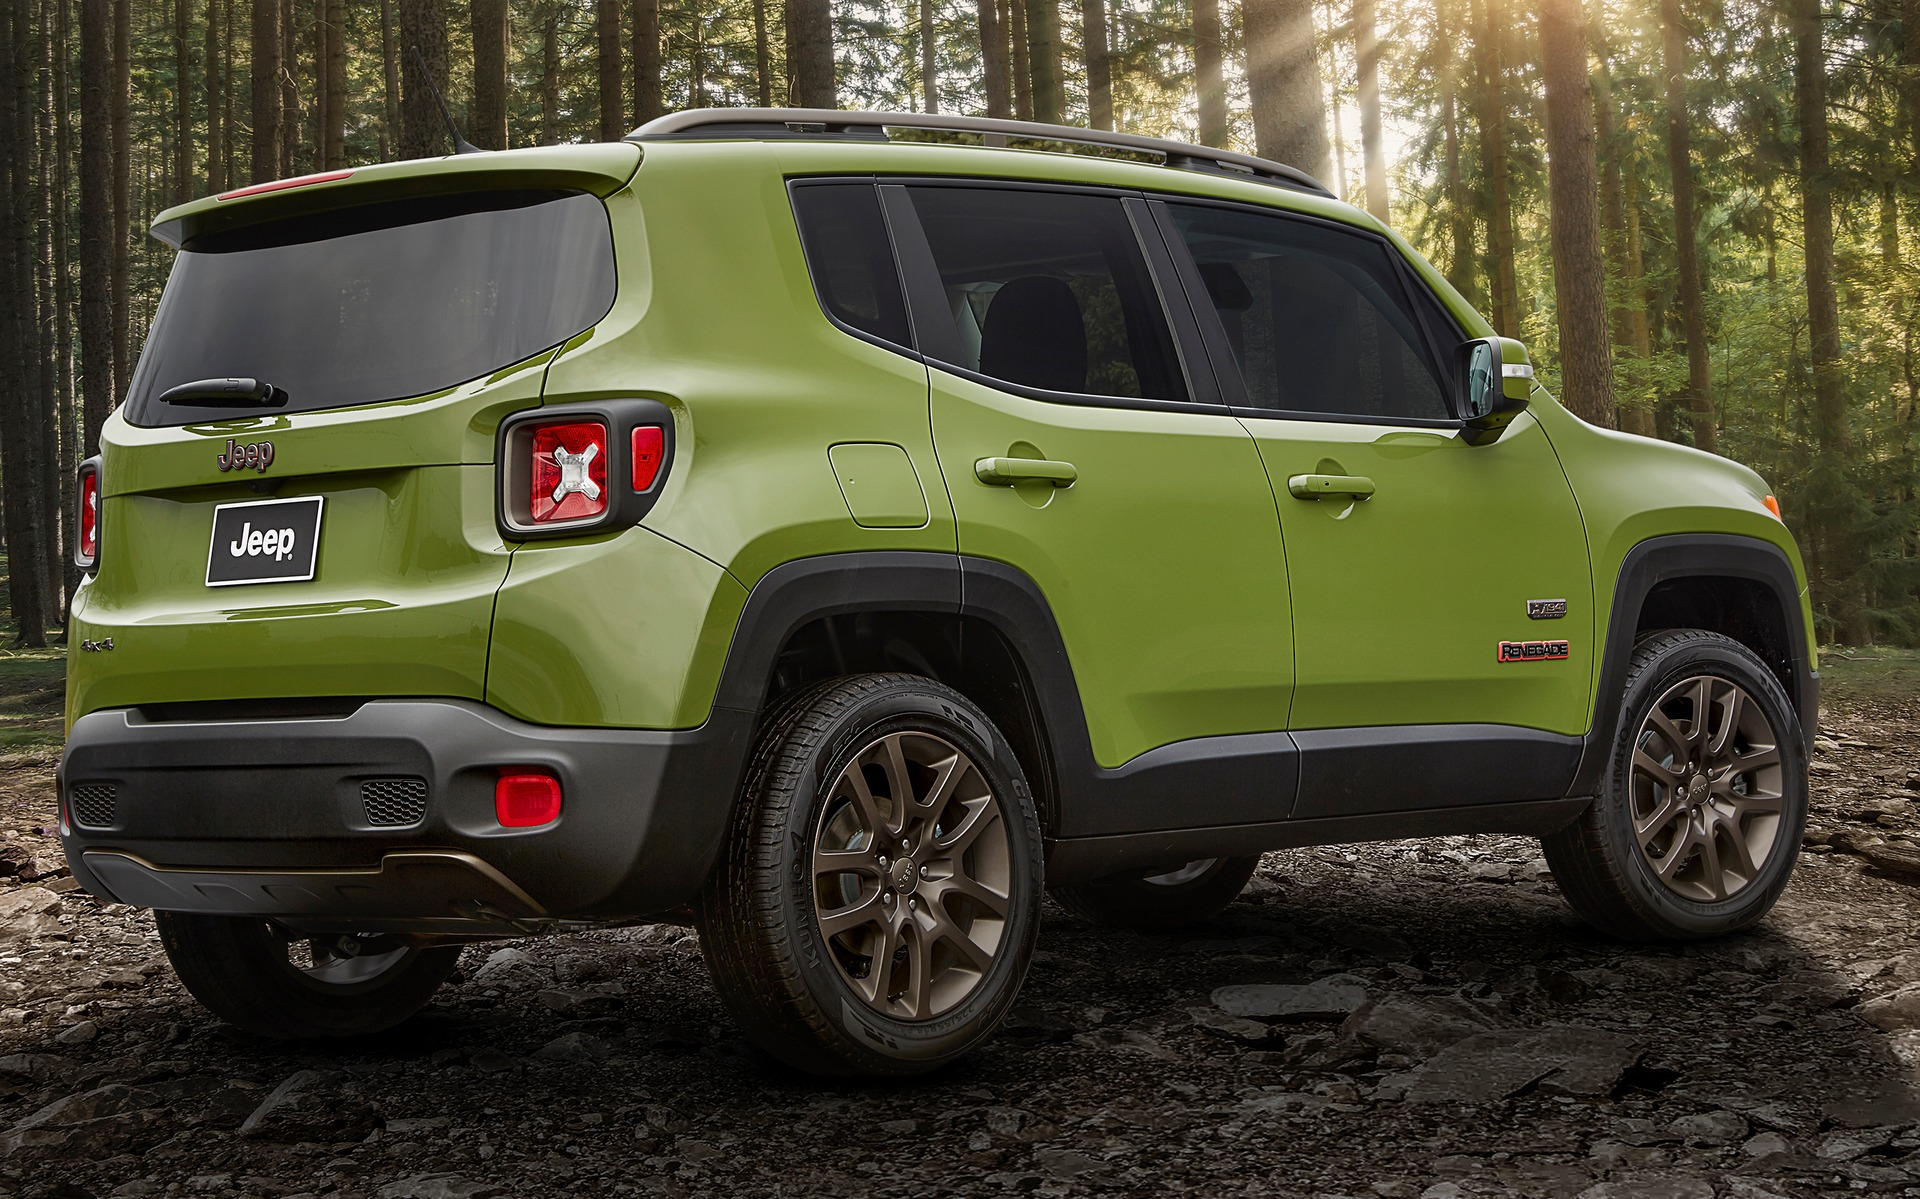 Jeep Models By Year >> Special Edition Jeep Models Celebrate The Brand S 75 Year